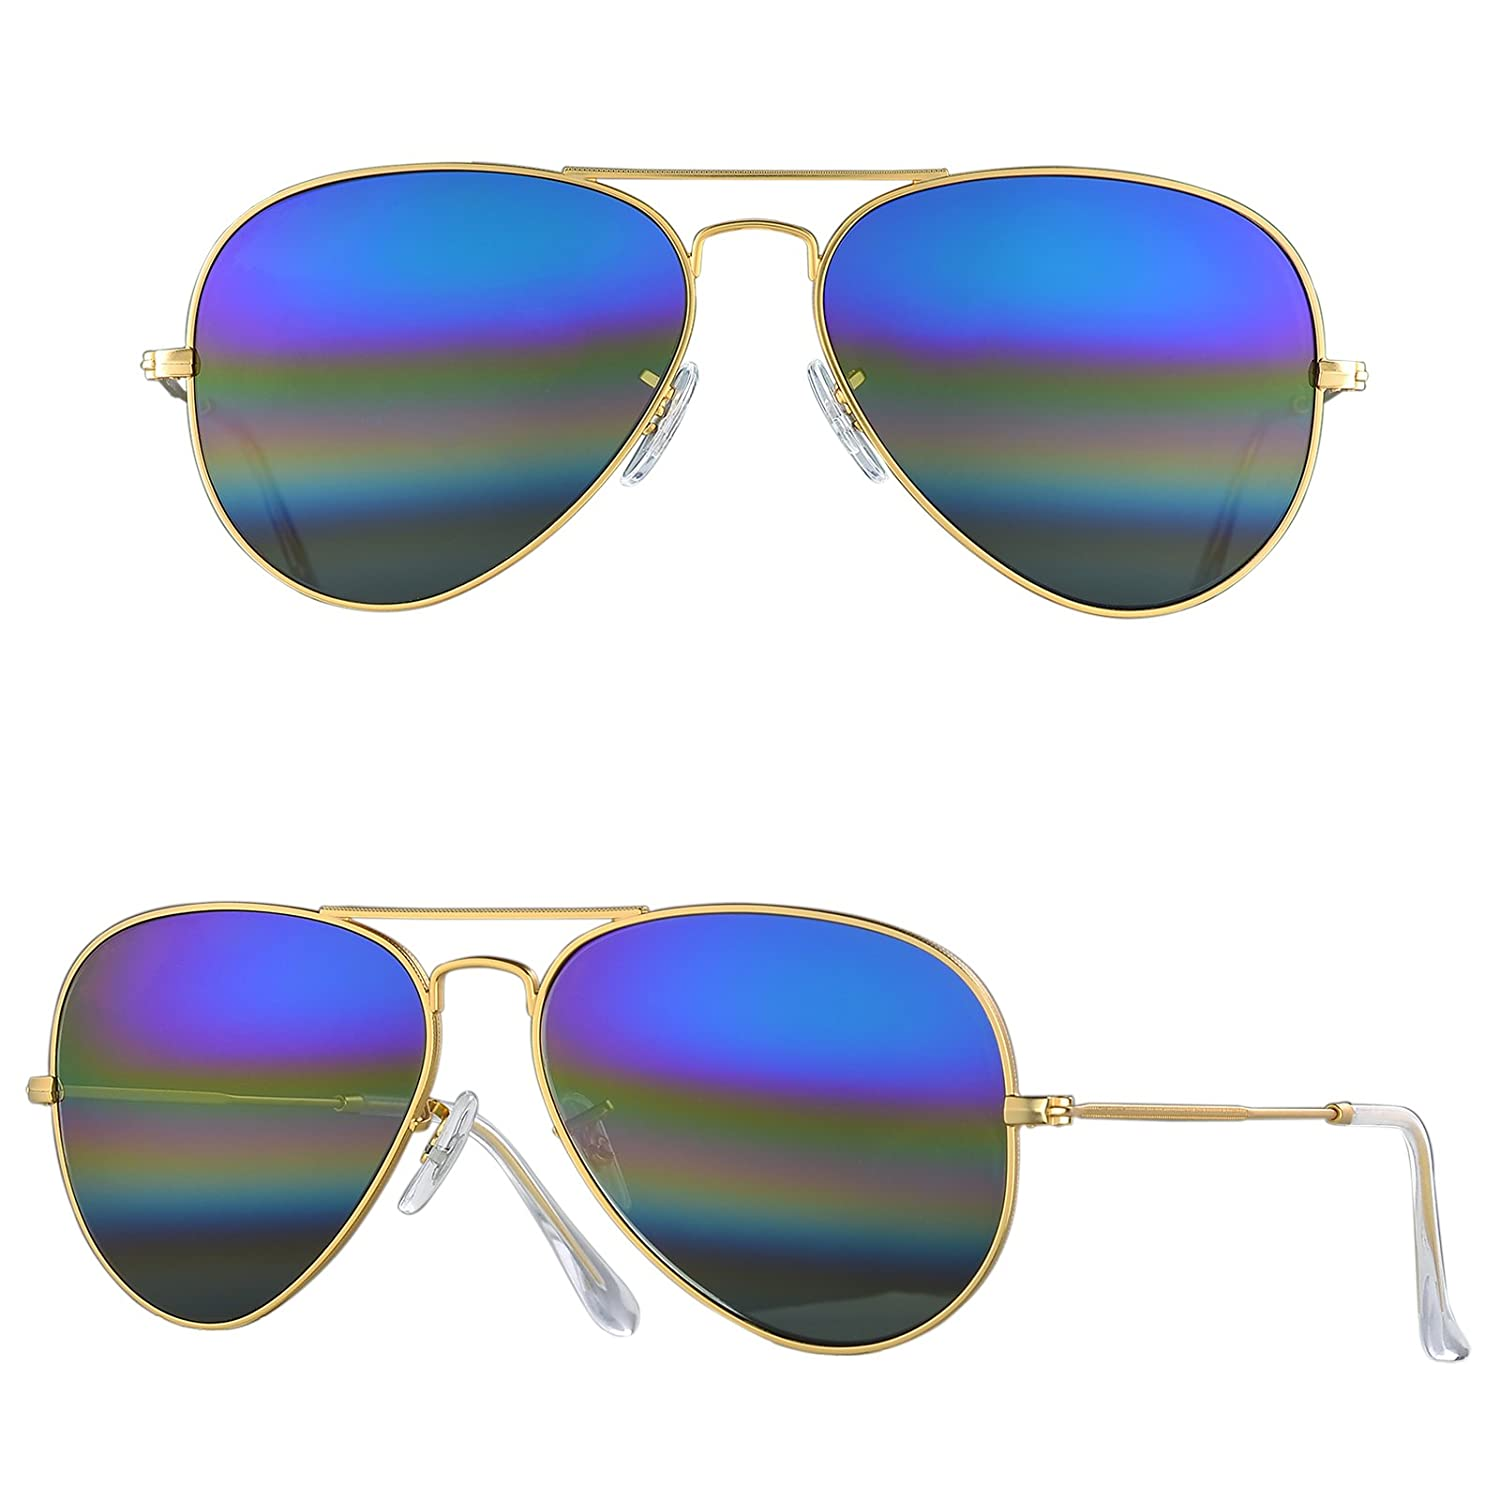 78fce96444 Amazon.com  BNUS Corning natural glass New Pilot Sunglasses Italy made with  Polarized Choices (Frame  Matte Gold Lens  Blue rainbow